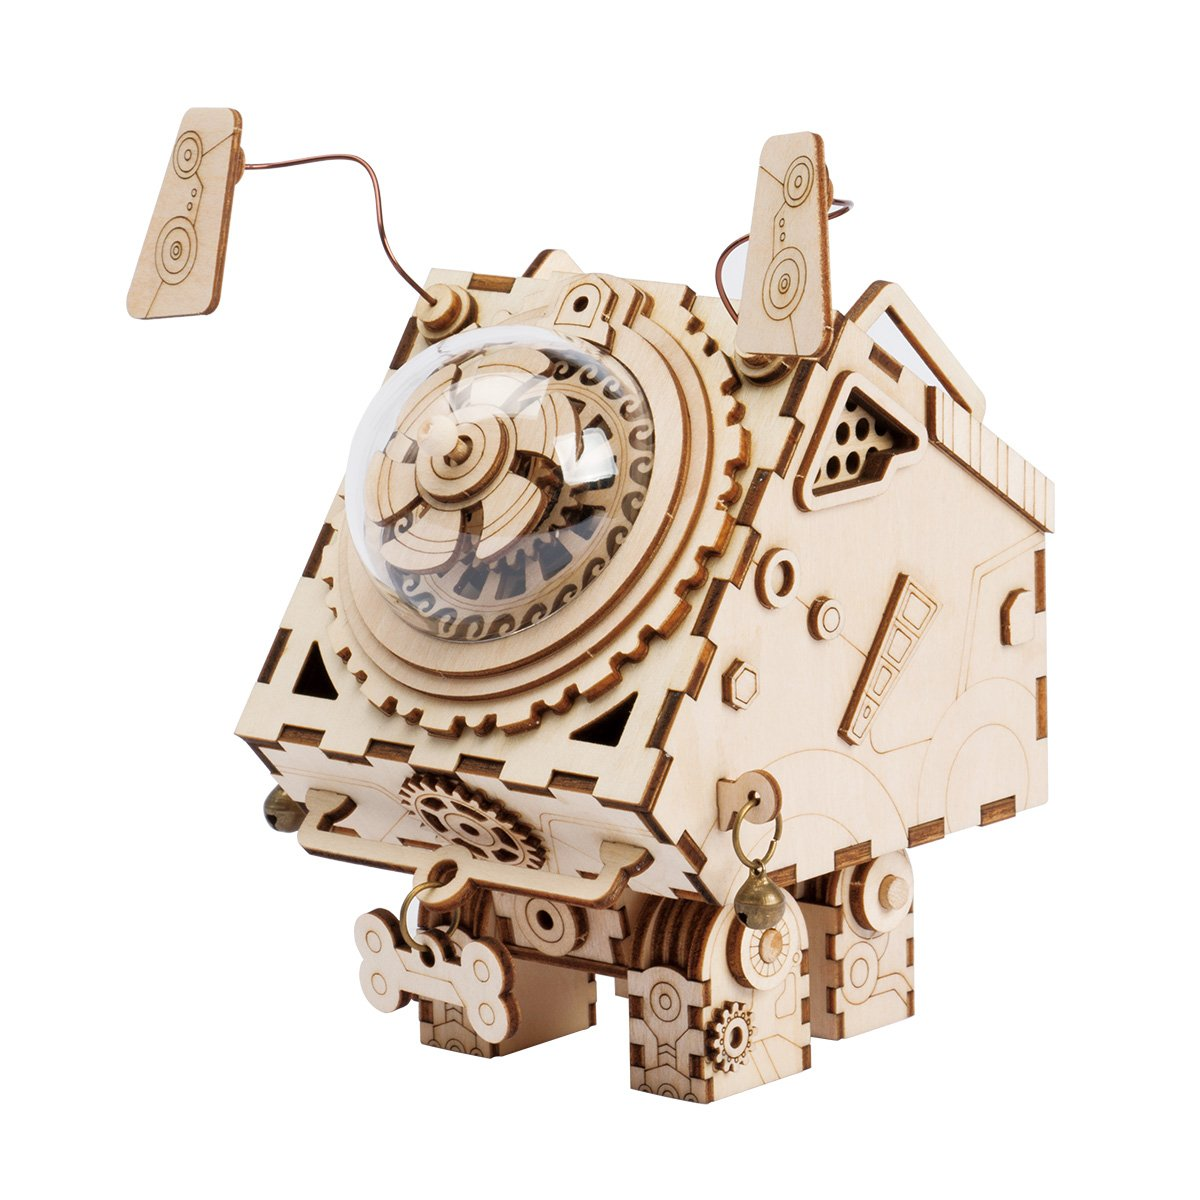 Steampunk Music BoxSeymour ROKR DIY Wooden Music Box KitHand Crank Musical Mechanism3d Wooden Model Building KitBest Gift Boys Girls When Christmas Birthday Valentine's Day